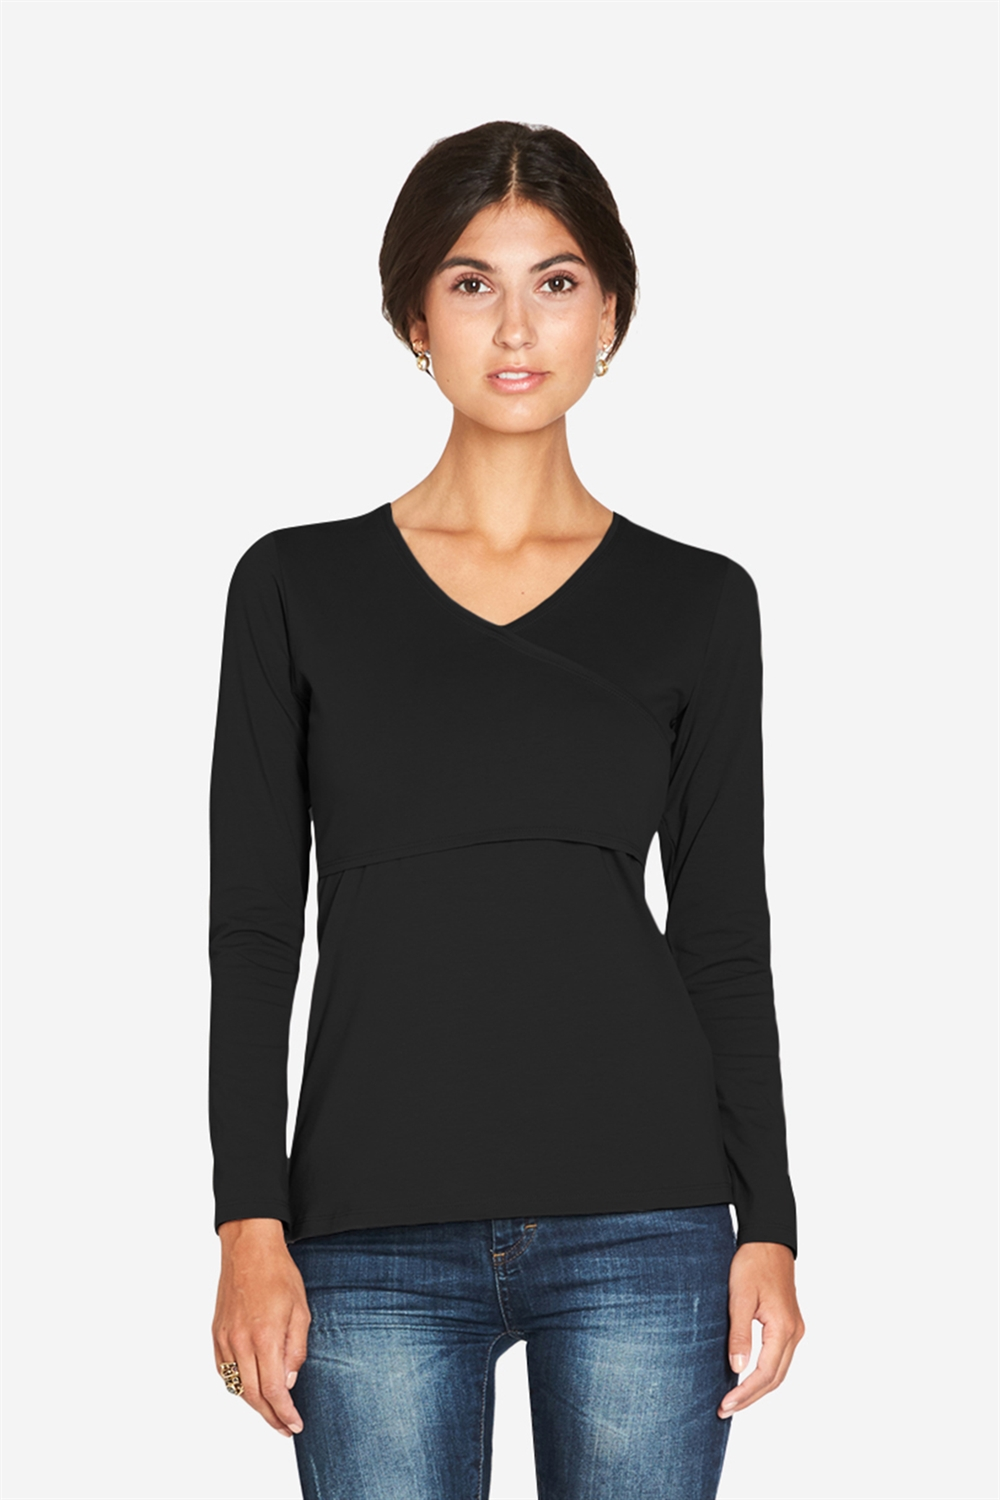 Black long sleeved nursing shirt with wrap look